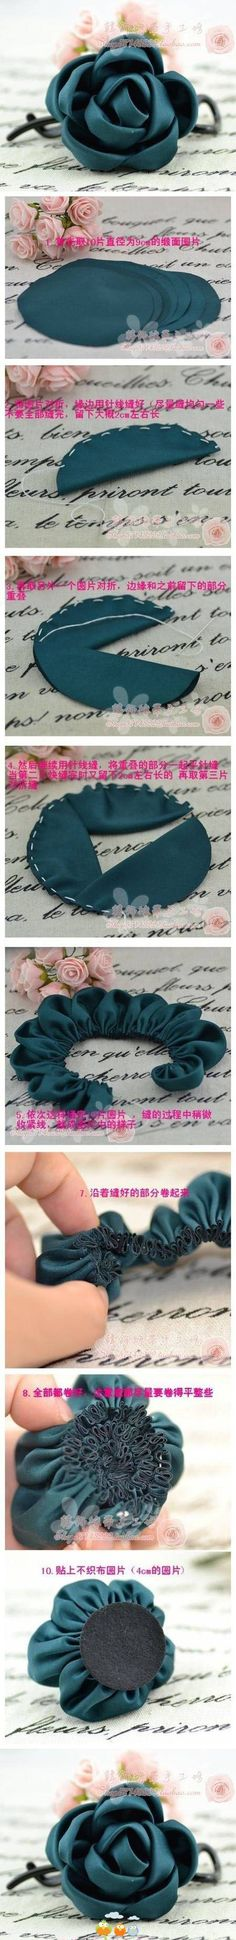 Coletero con rosa - Headband with Rose